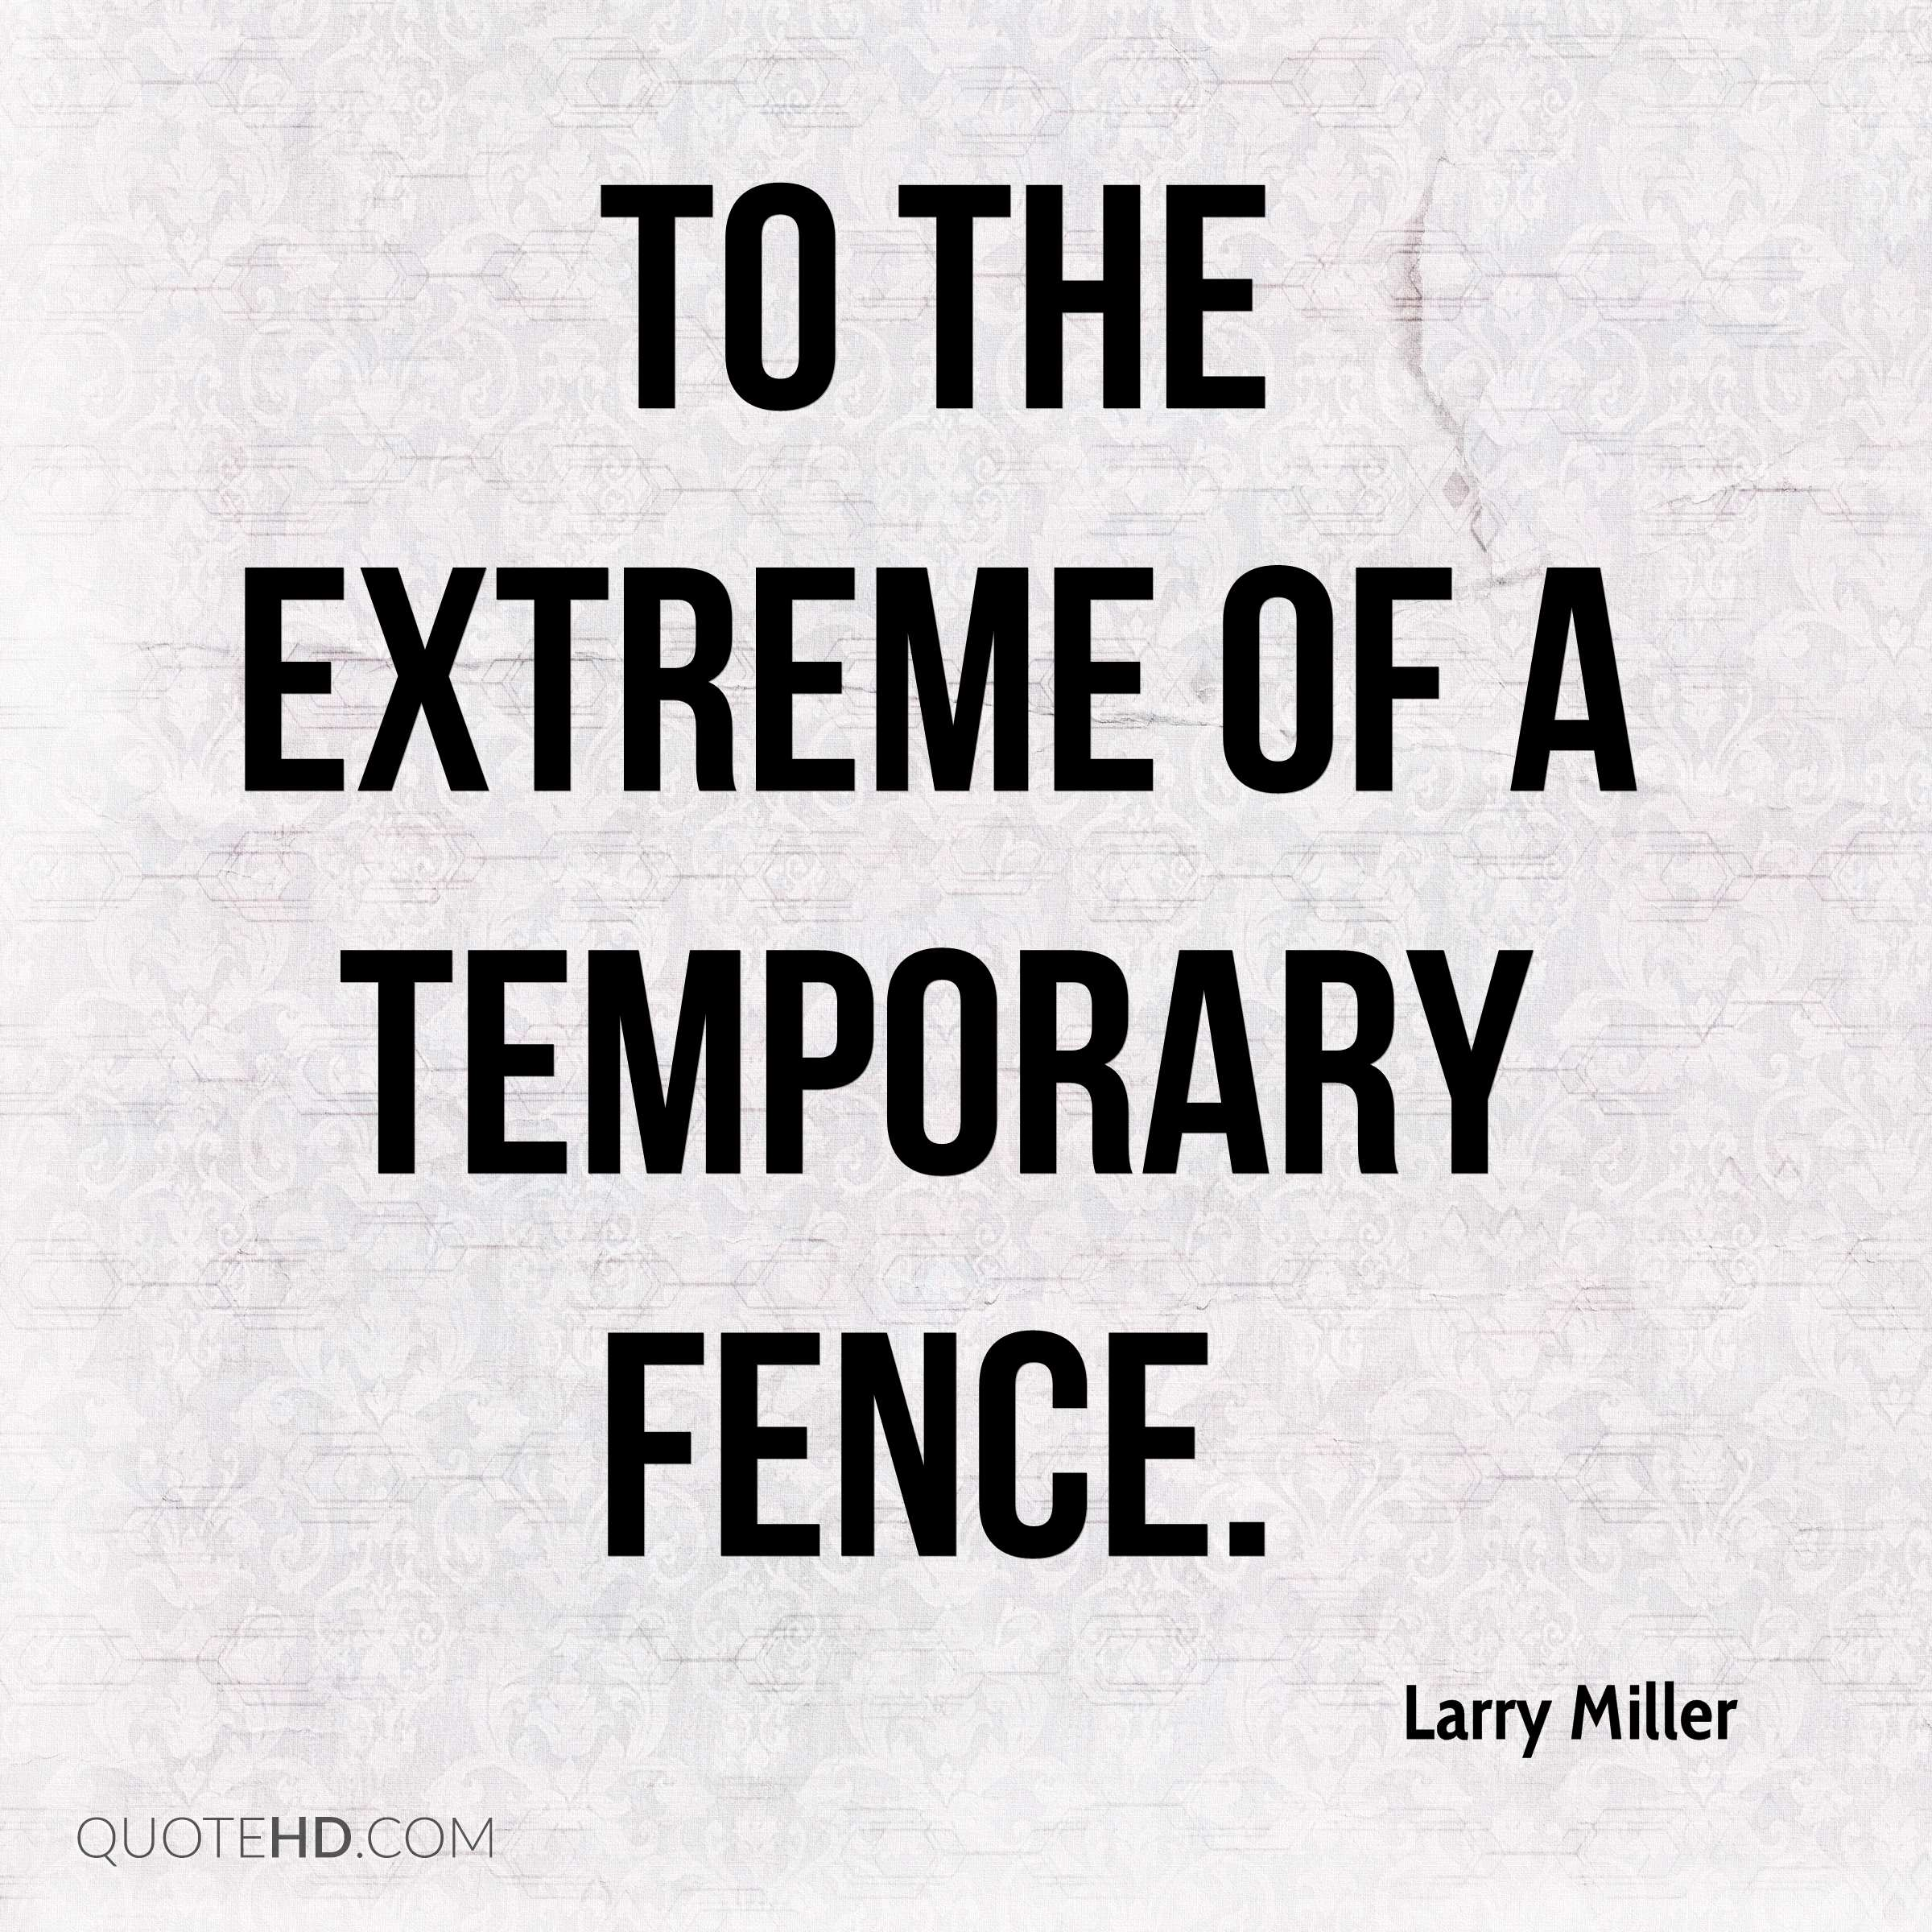 Fence Quotes Larry Miller Quotes  Quotehd